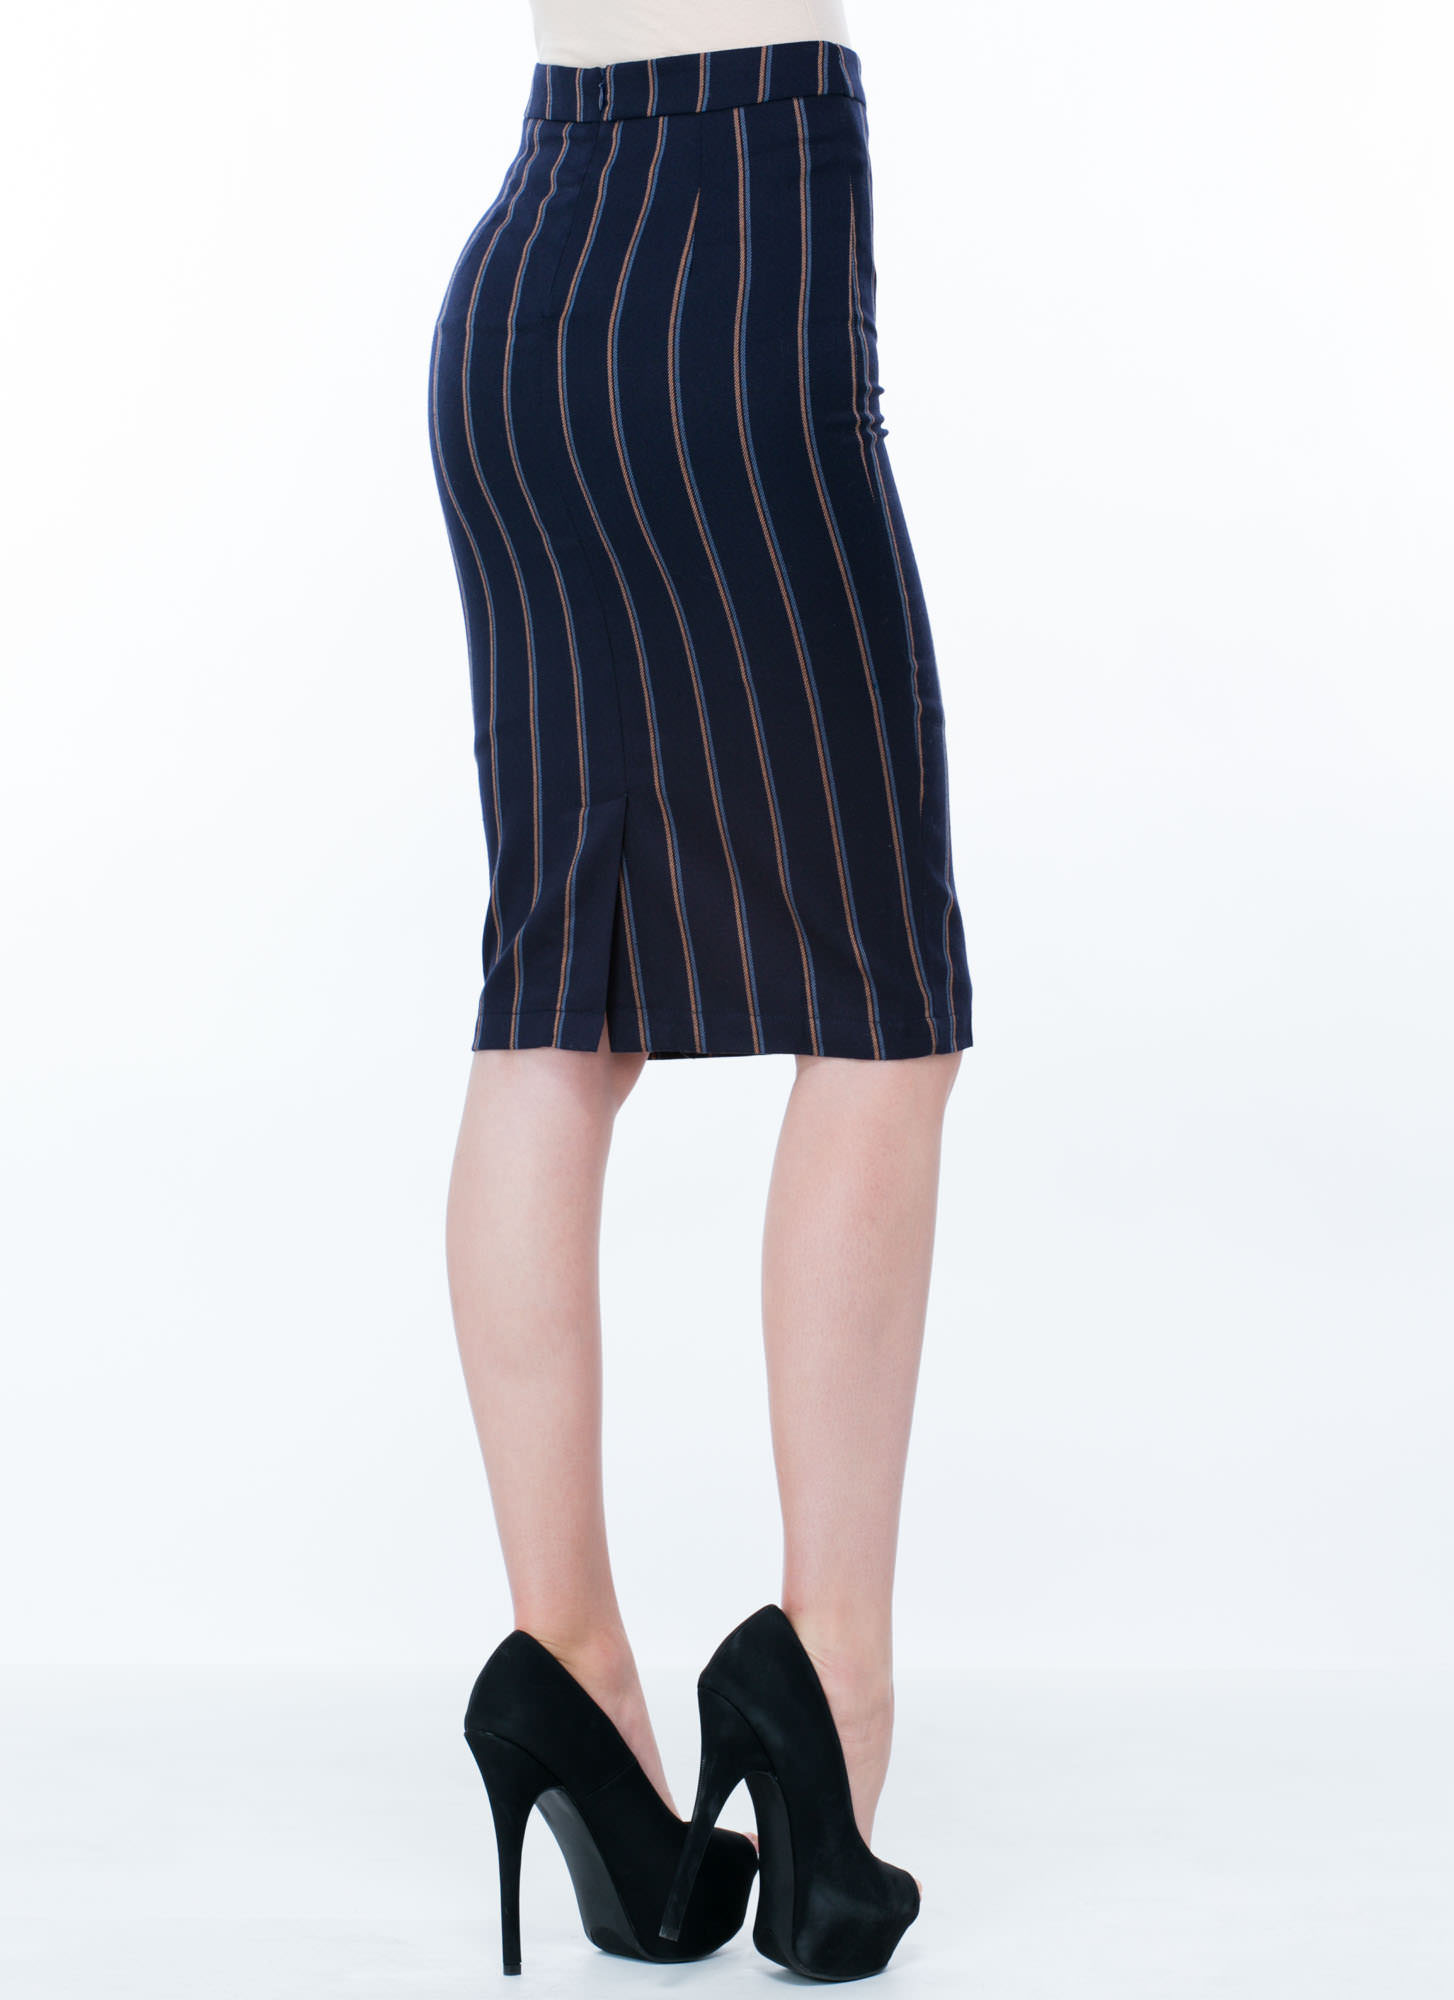 boden milf women Find stylish misses dresses and maxi dresses at dressbarn discover your perfect fit in dressbar's collection of misses, plus size, and petite dresses.